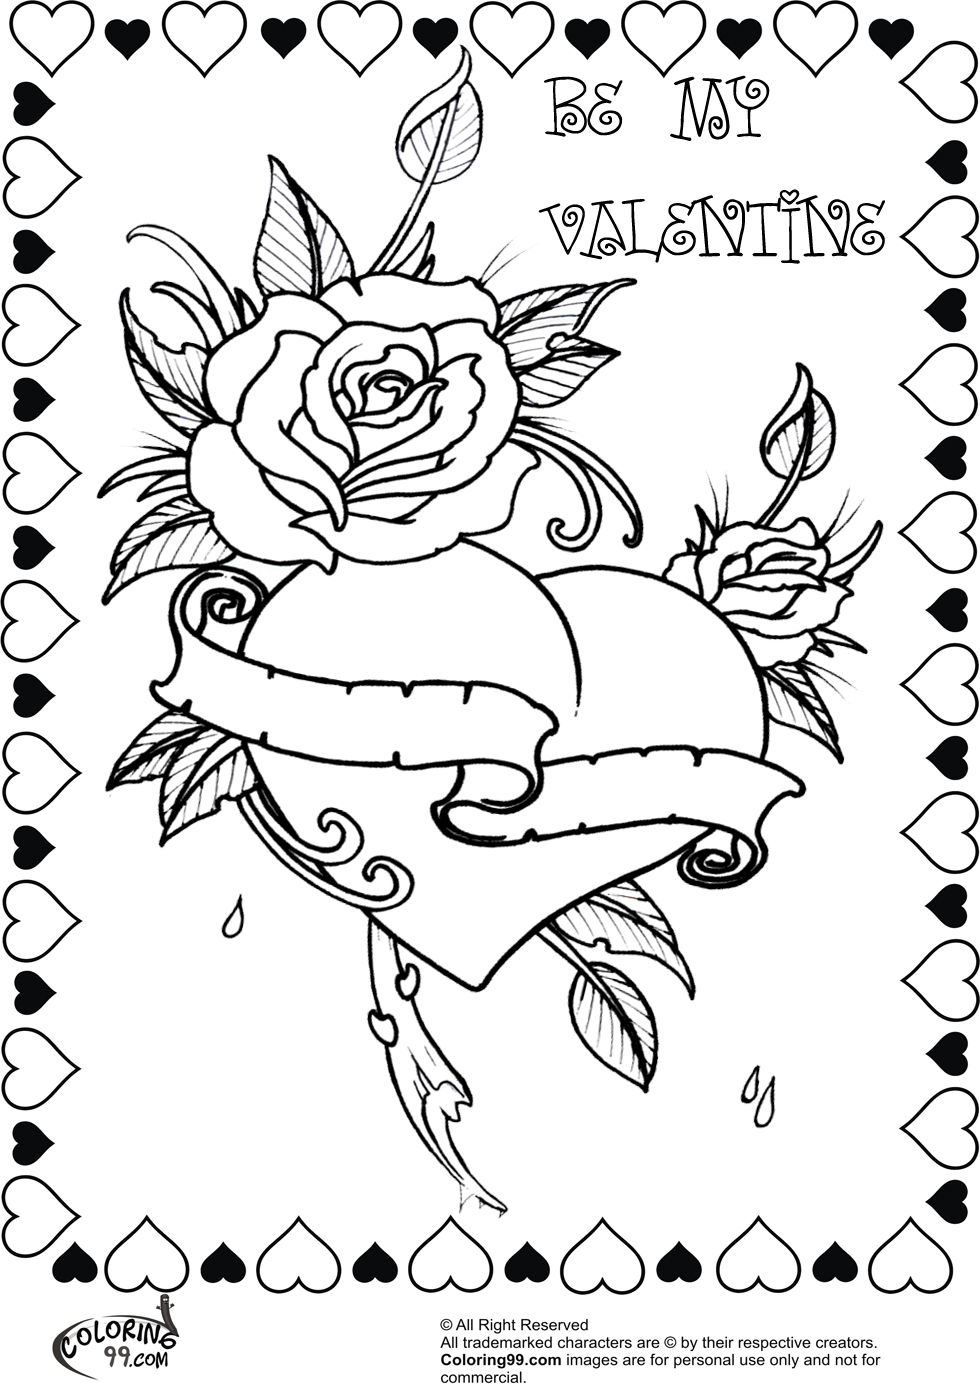 Valentine Heart Drawing at GetDrawings.com | Free for personal use ...